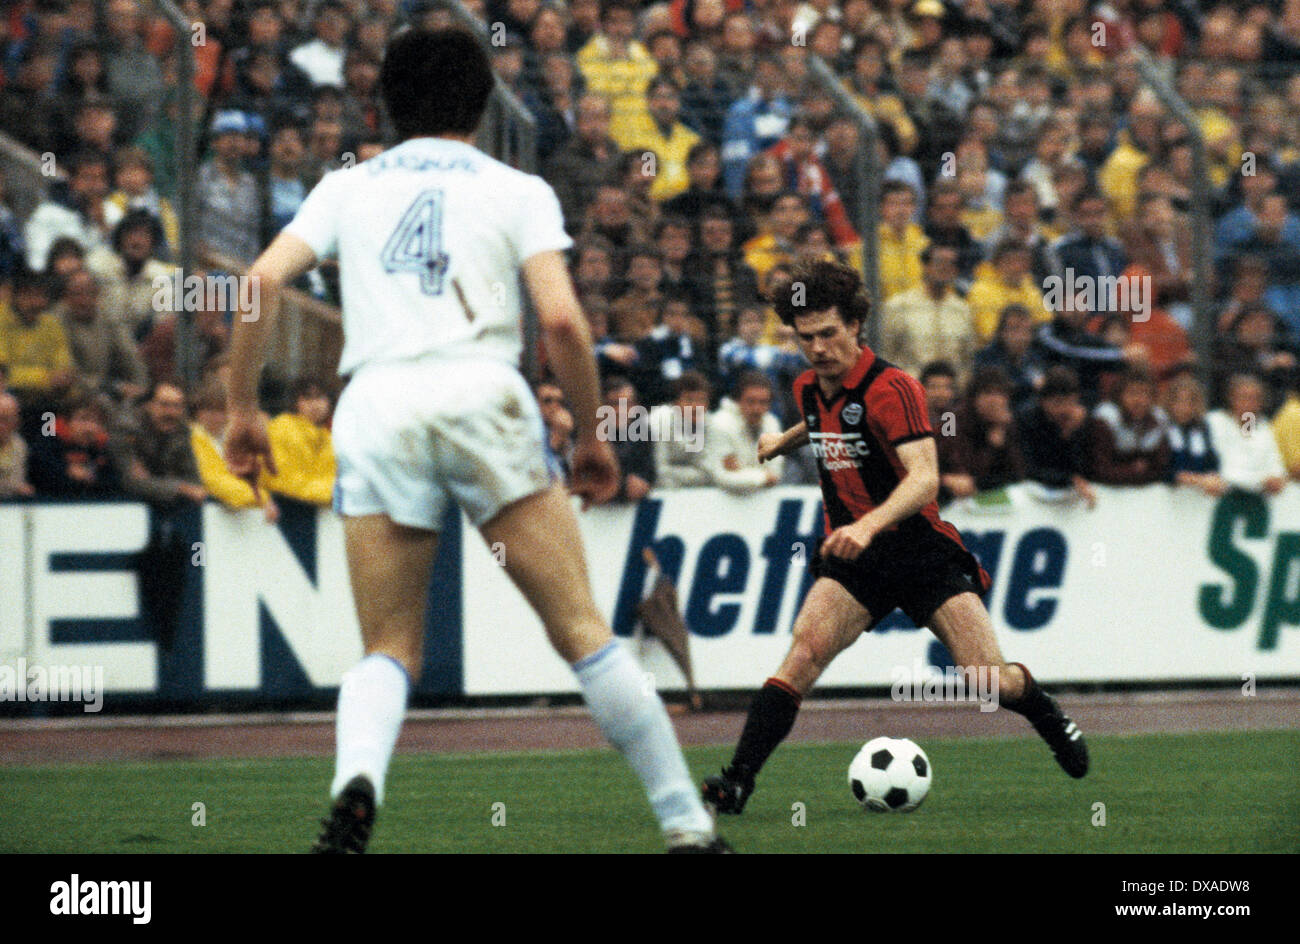 football, 1. Bundesliga, 2. Bundesliga, 1983/1984, relegation match to Bundesliga 1984/1985, first leg, Wedau Stadium, MSV Duisburg versus Eintracht Frankfurt 0:5, scene of the match, Ralf Sievers (Frankfurt) in ball possession - Stock Image